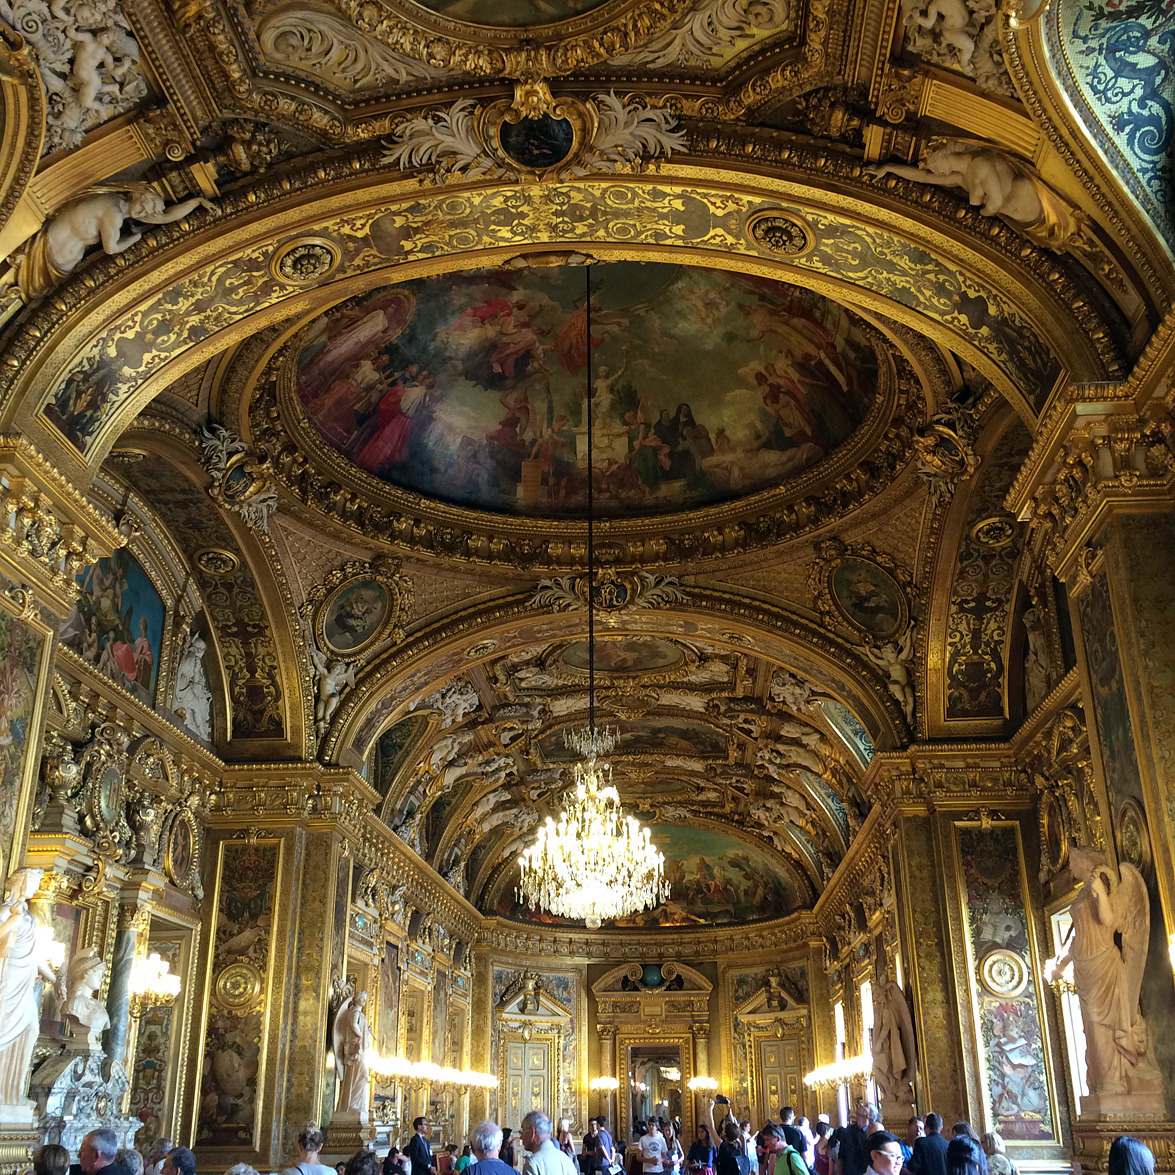 (above) In the 1850s, at the request of Emperor Napoleon III, Gisors created the highly decorated Salle des Conférences (inspired by the Galerie d'Apollon of the Louvre), which influenced the nature of subsequent official interiors of the Second Empire, including those of the Palais Garnier.